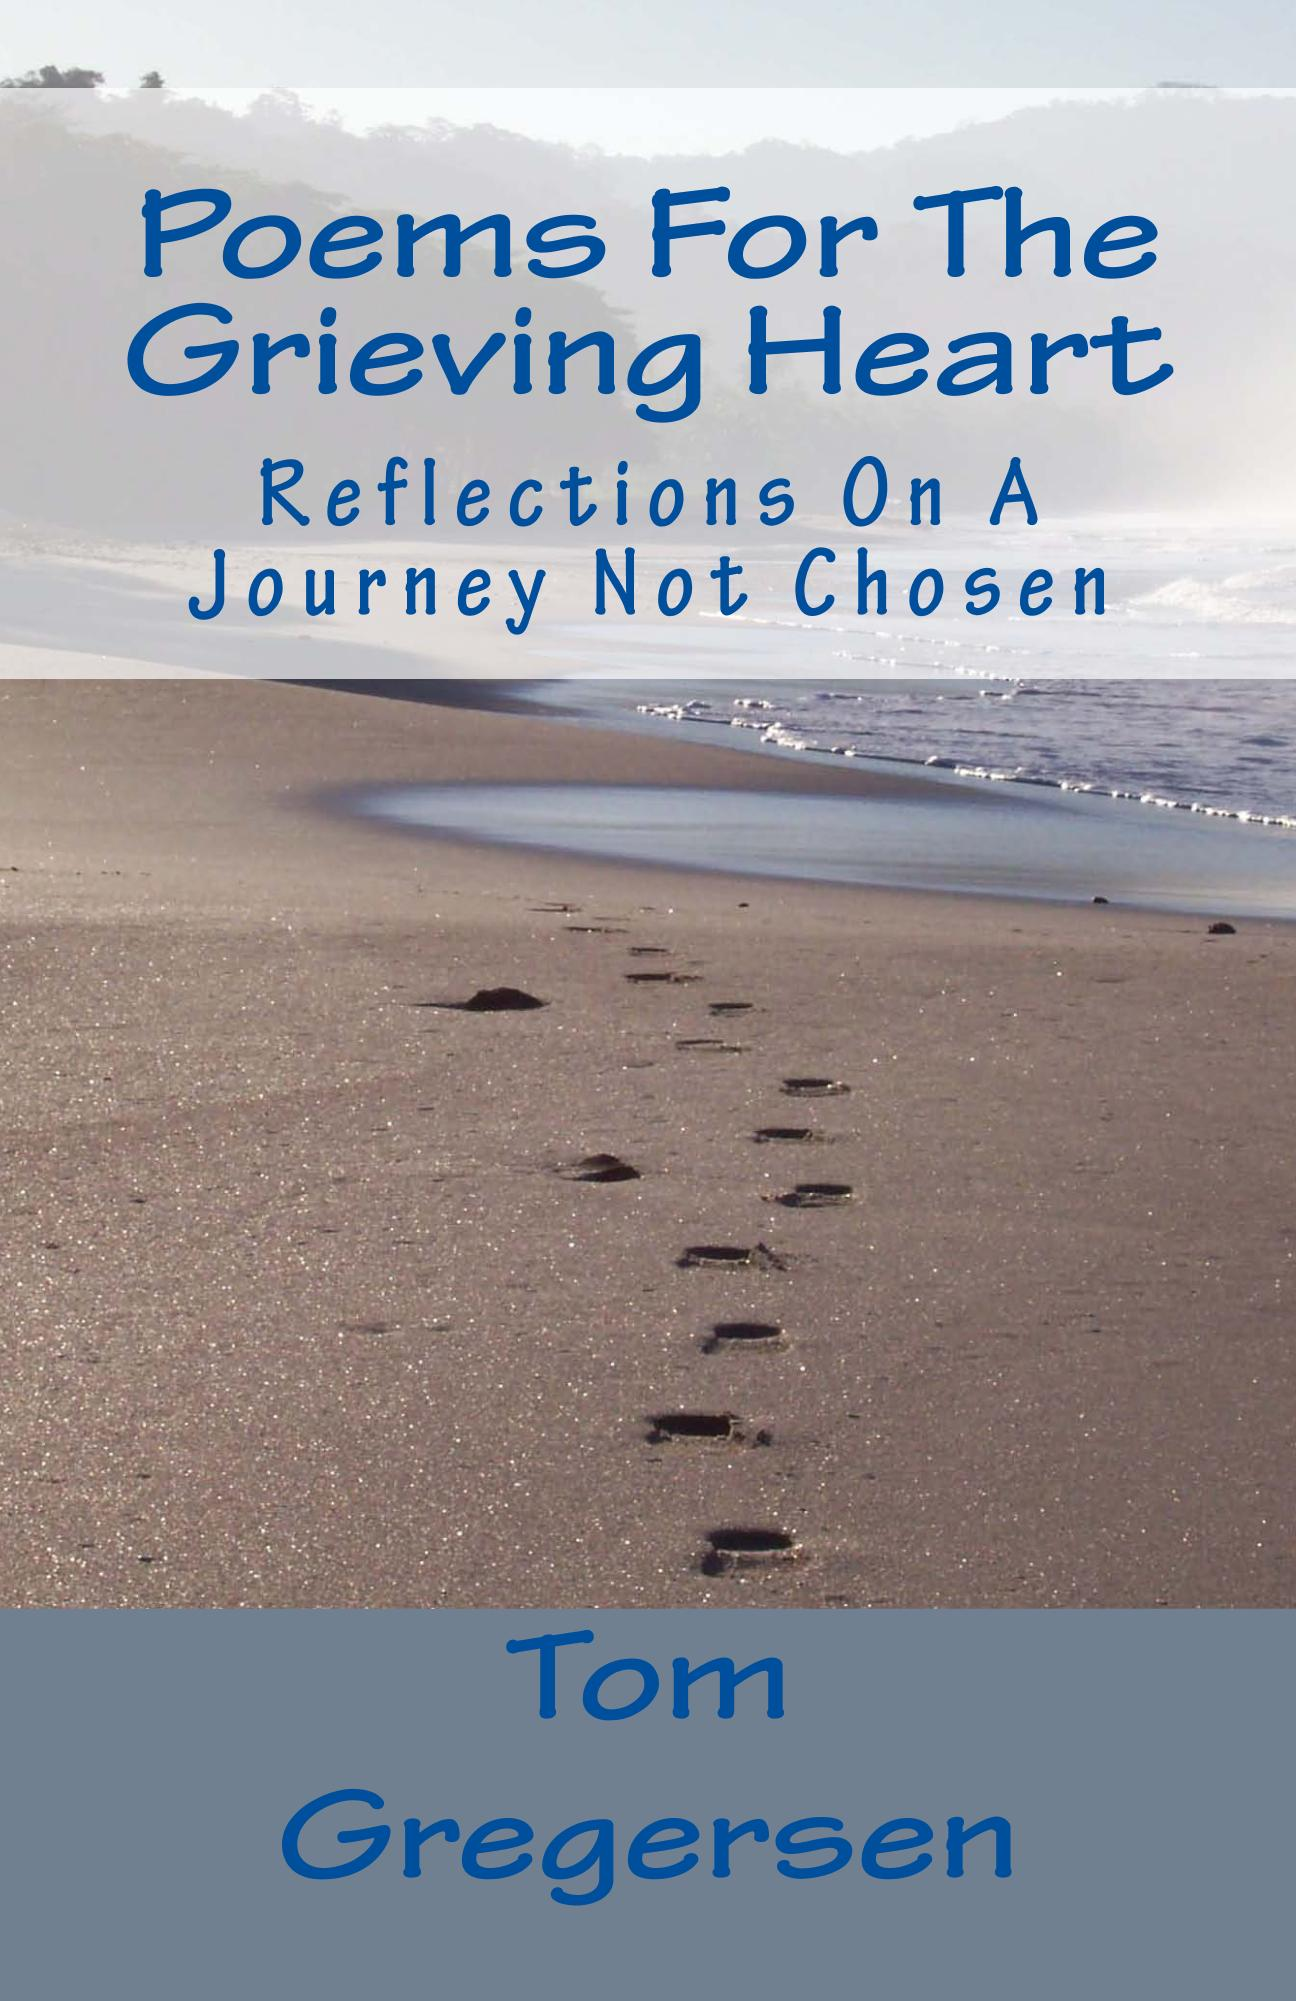 new book poems for the grieving heart by tom gregersen